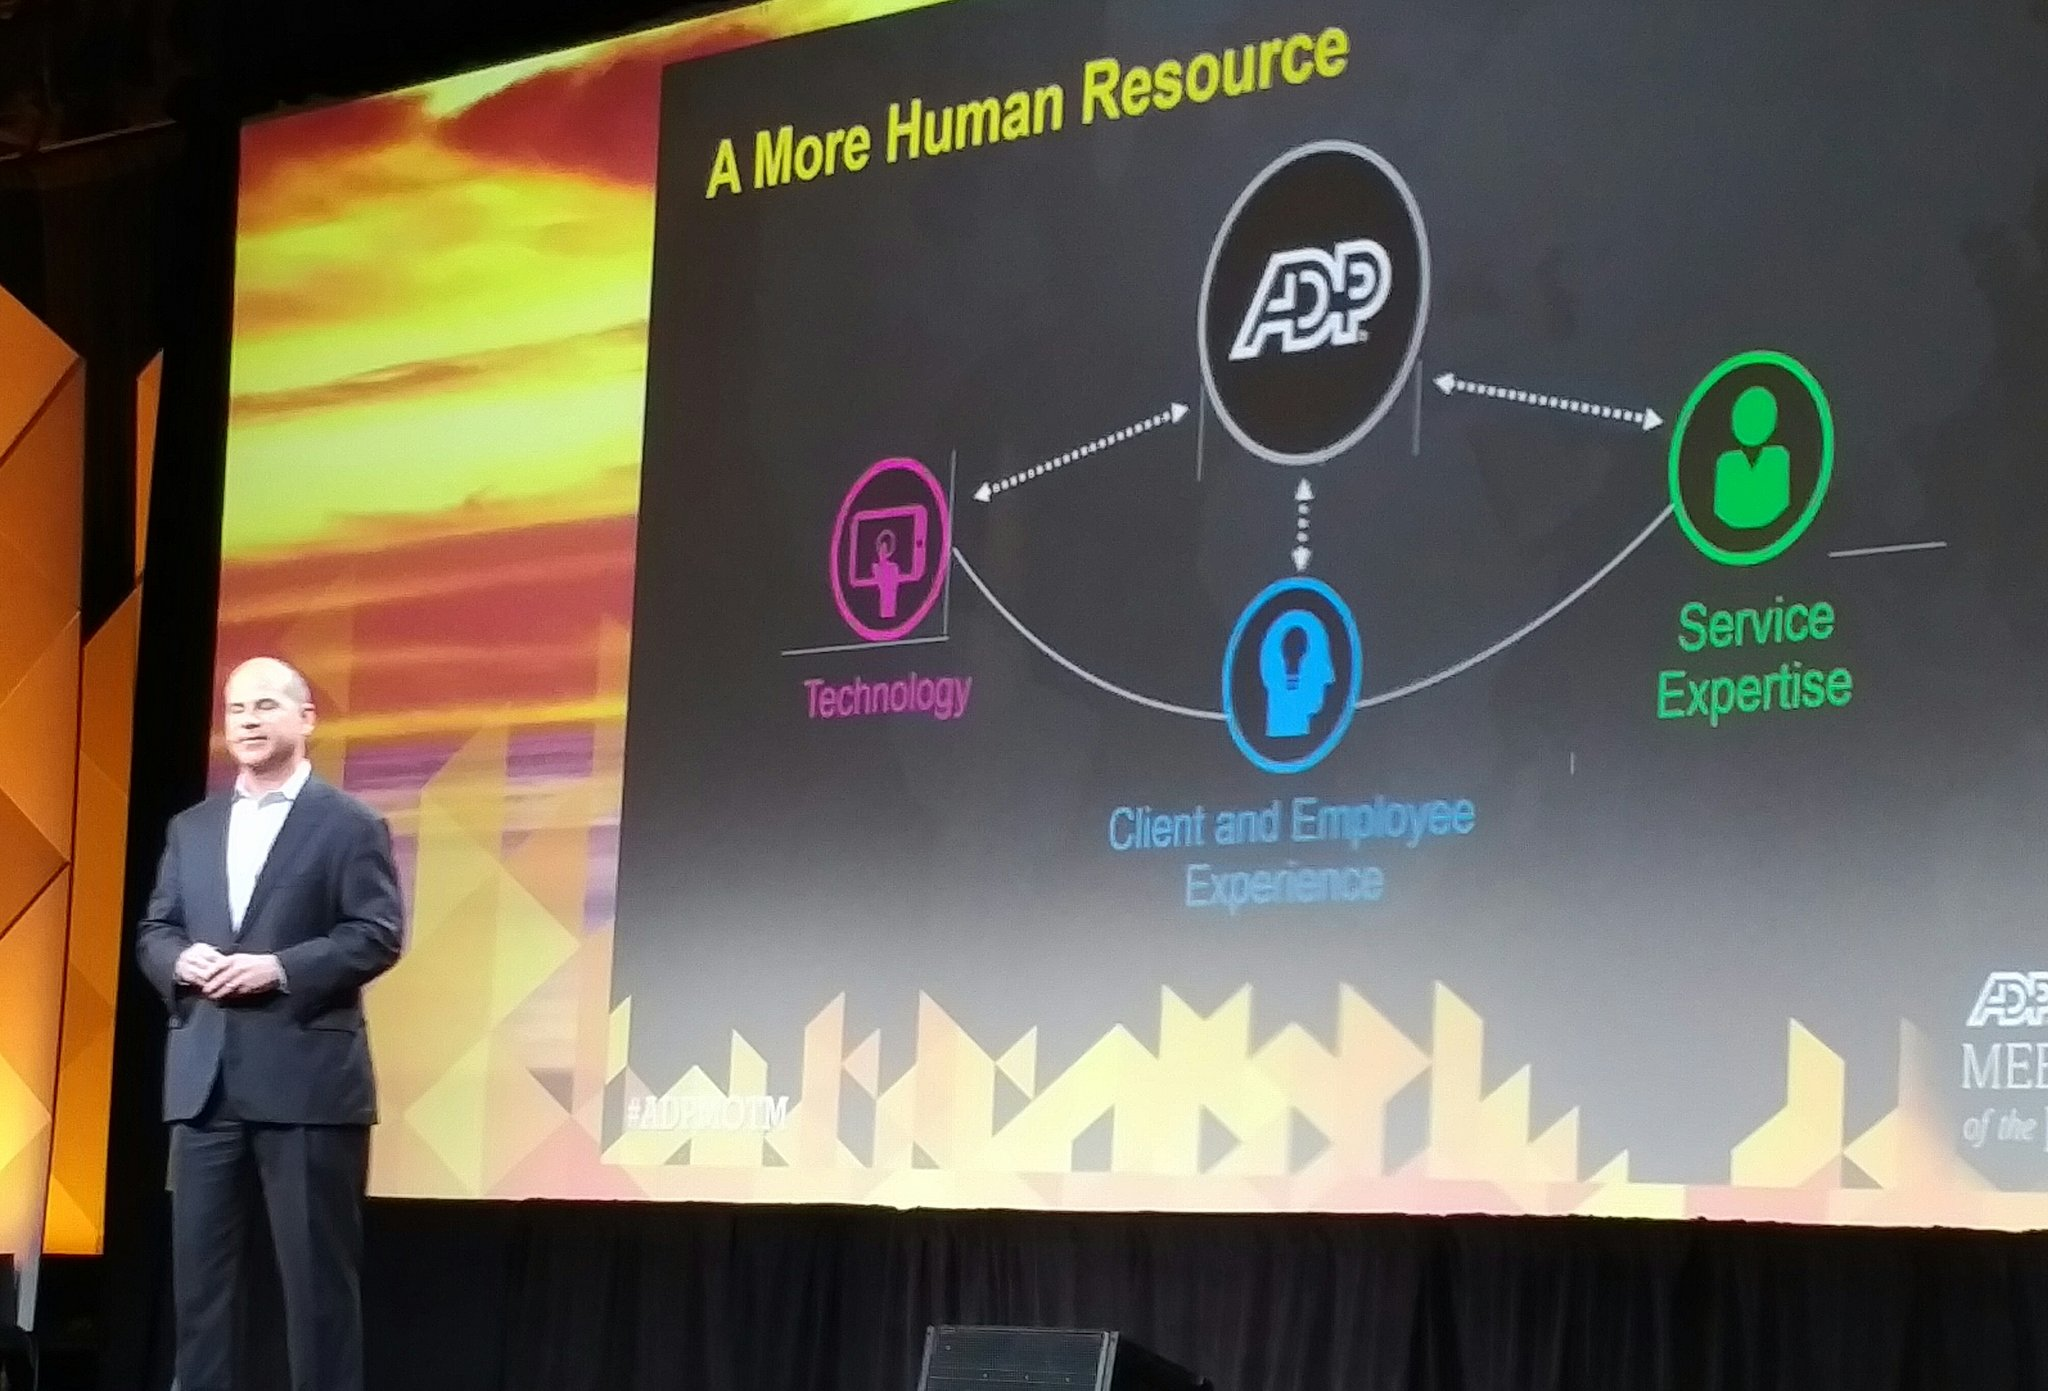 And Rodriguez closes with a more human resource -  @ADP tag line since a few years. #ADPMOTM https://t.co/cInROkxdV8